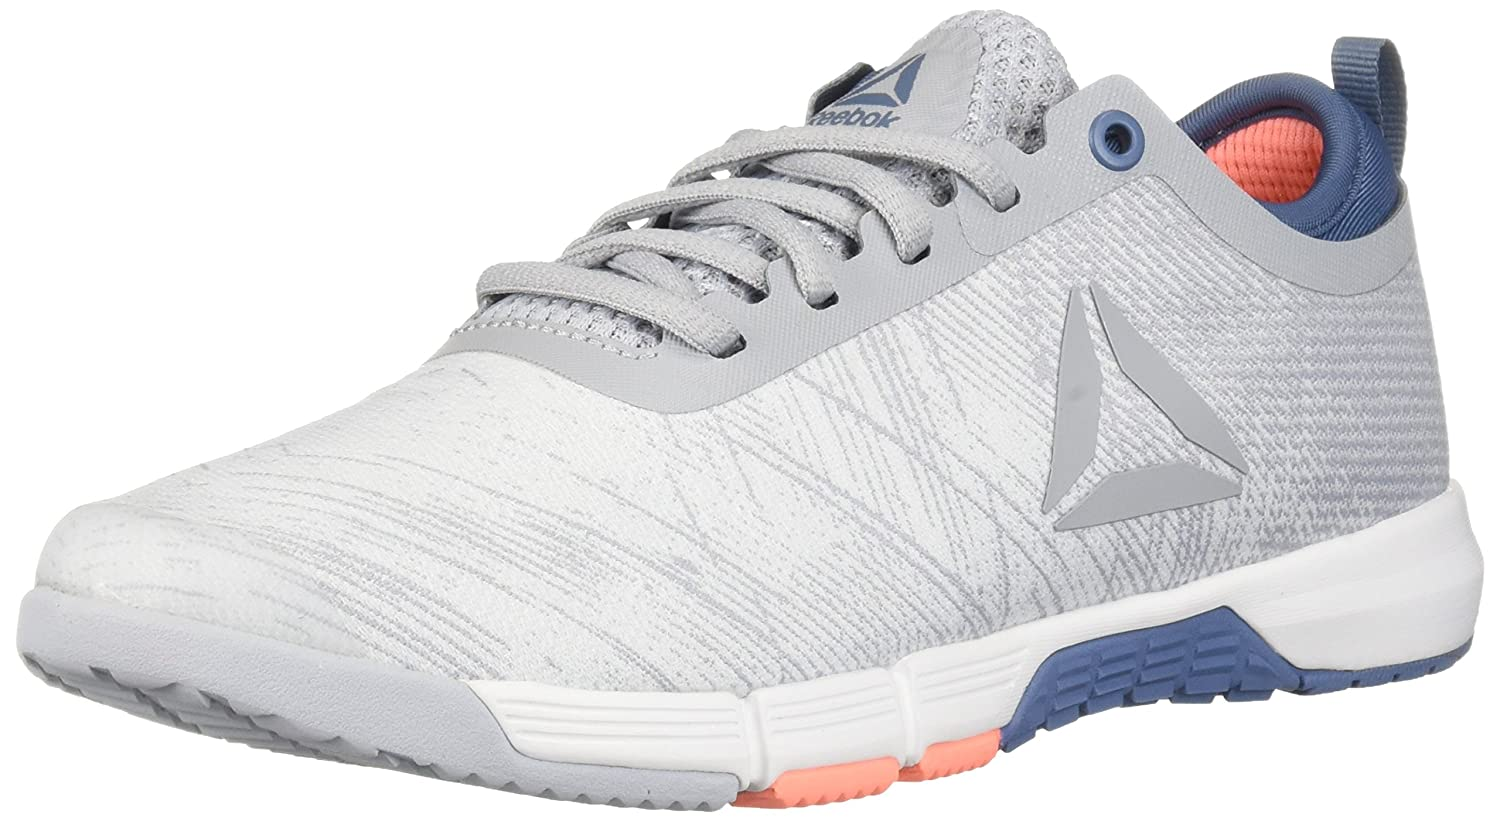 Reebok Women's Speed Her Tr Cross Trainer B078DF8H85 10 B(M) US|Spirit White/Cloudgry/White/B